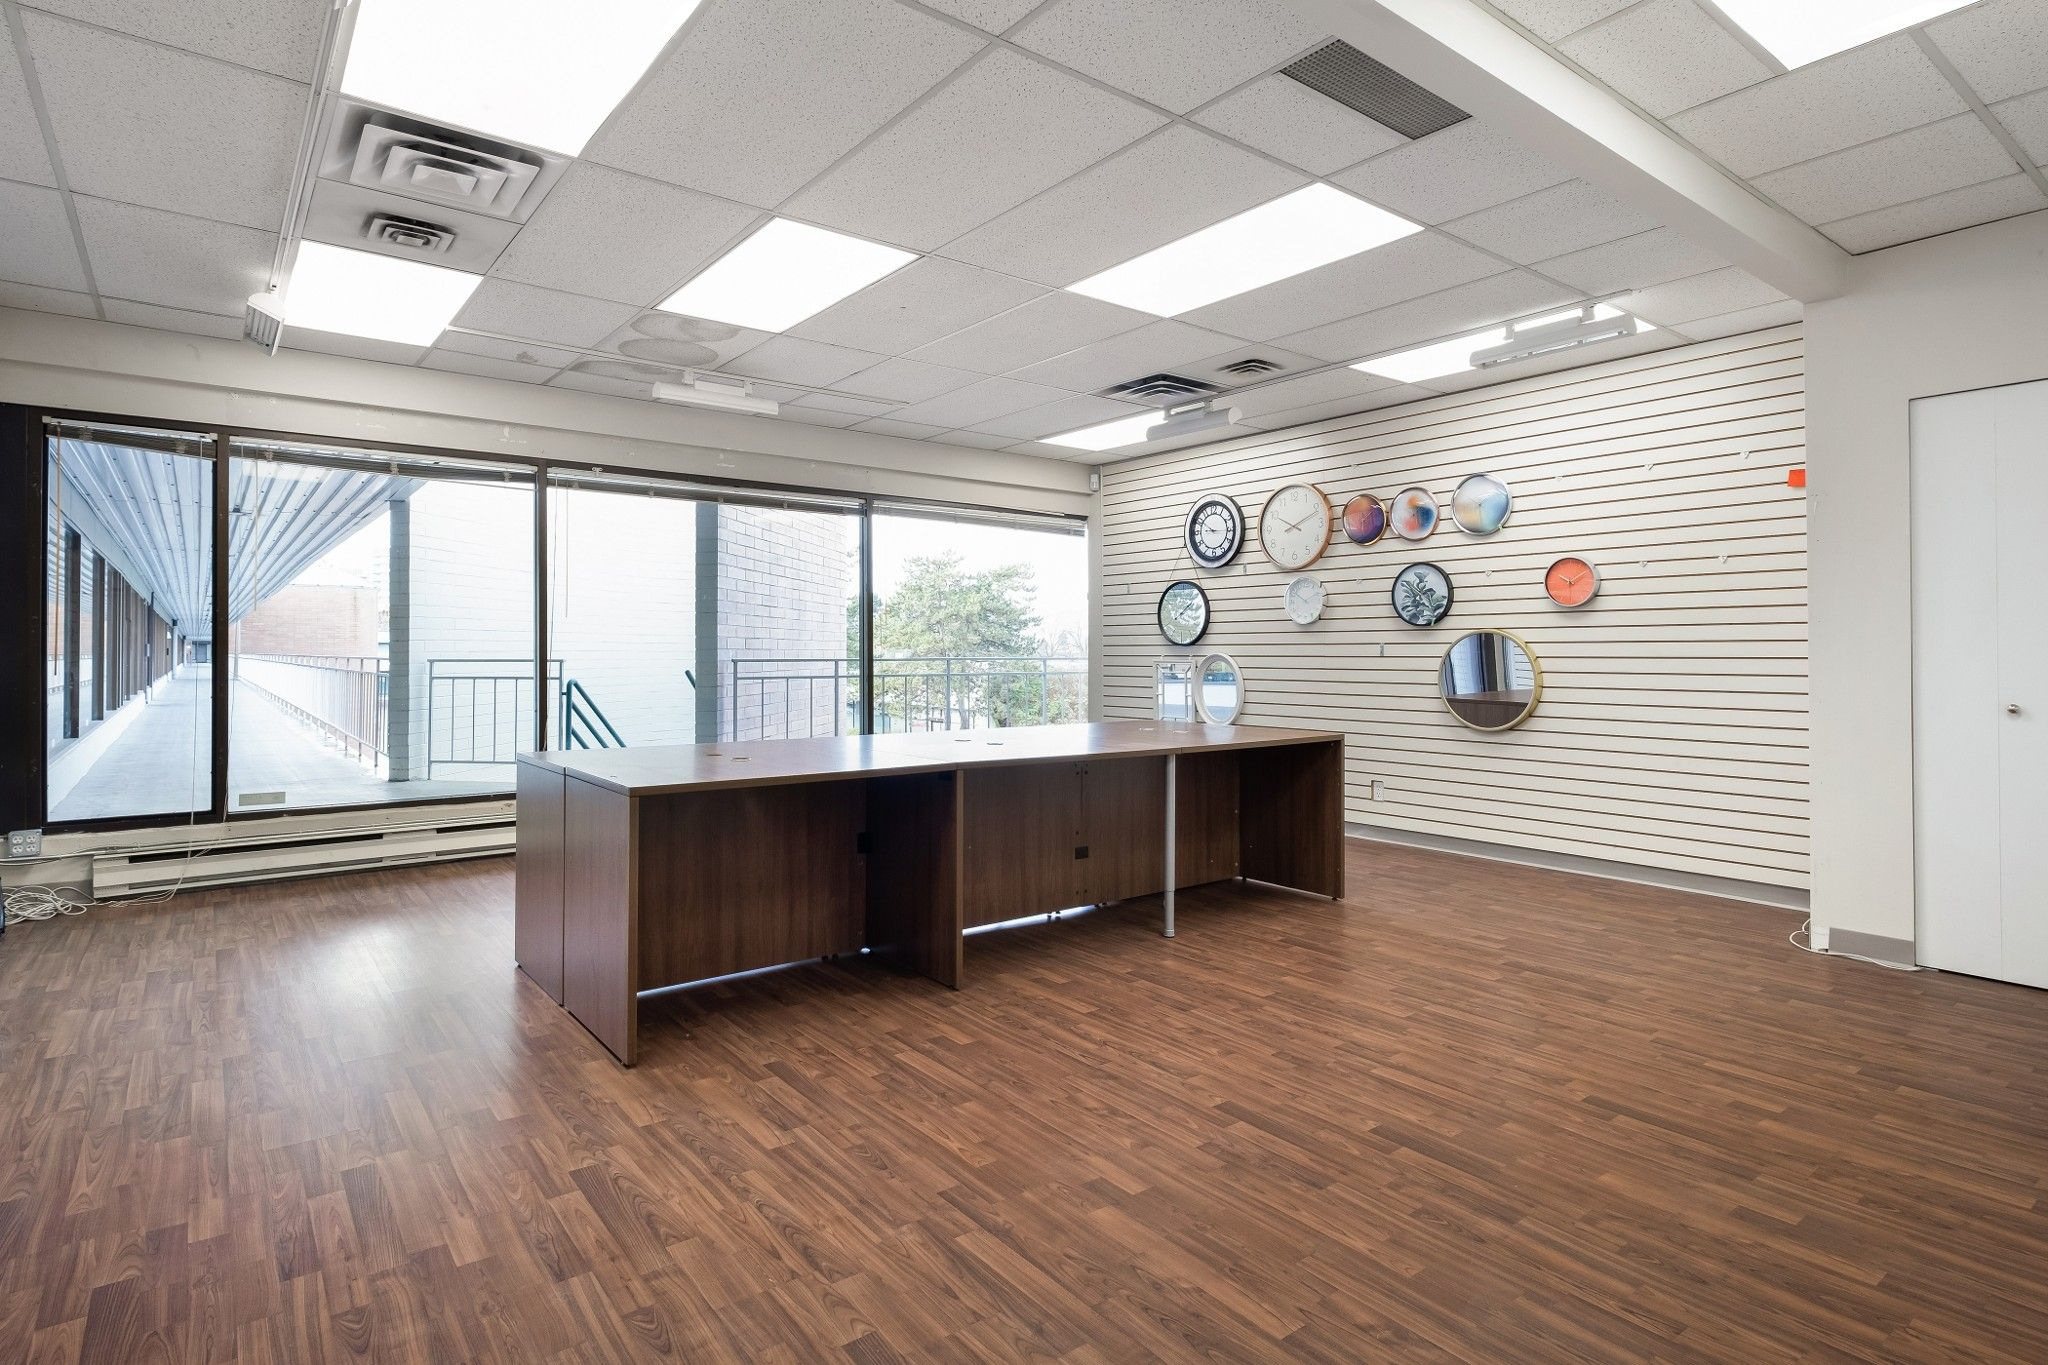 Main Photo: 226 & 227 7080 River Road in Richmond: Brighouse Office for sale or lease